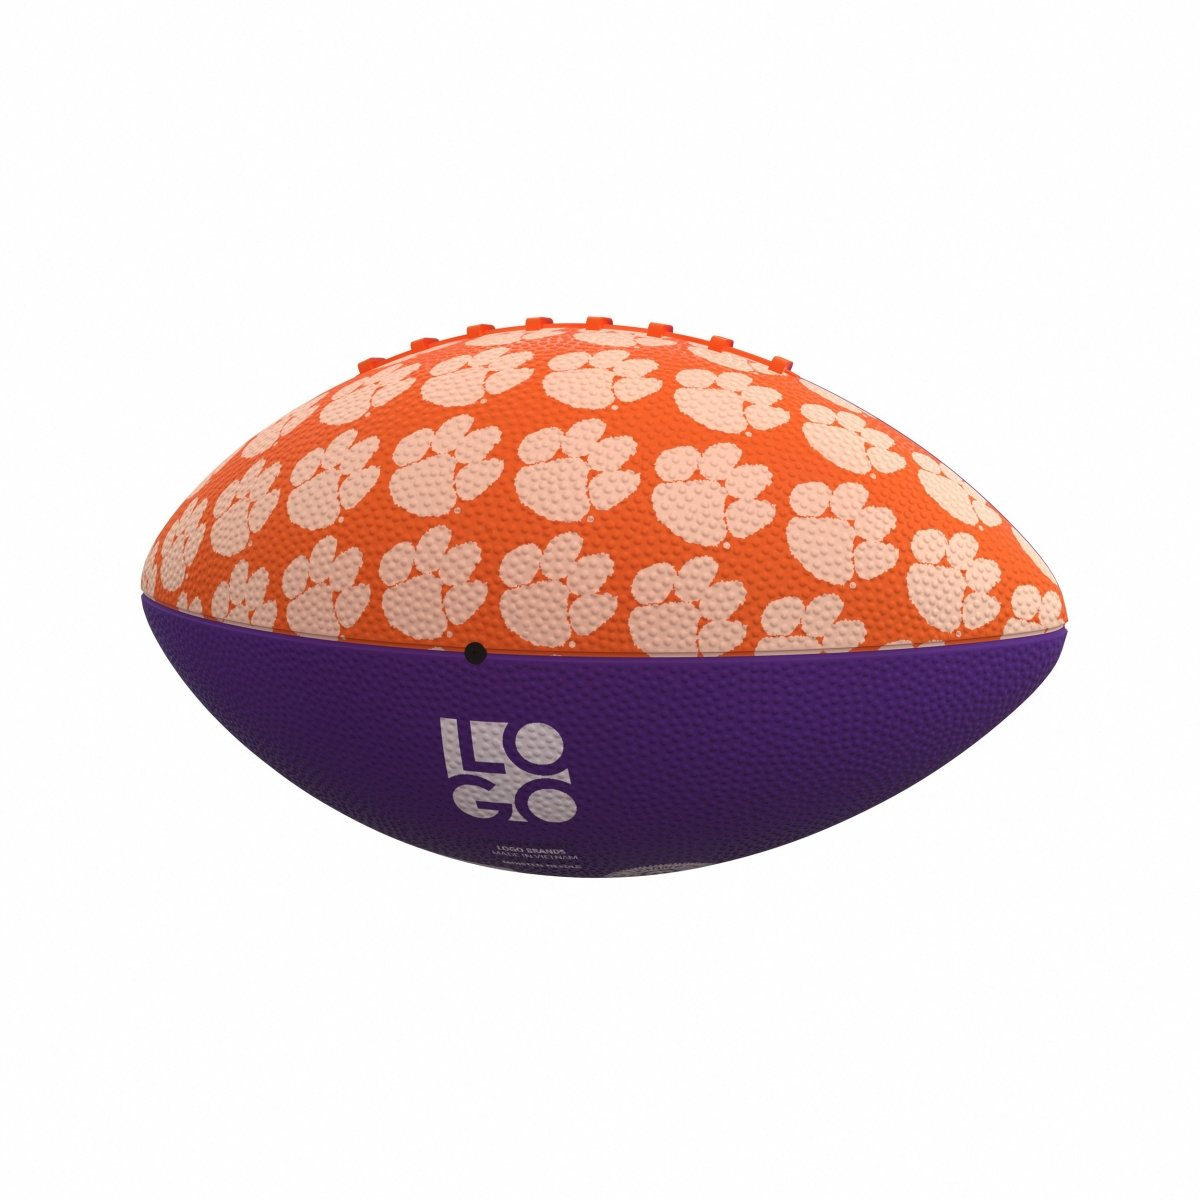 Clemson Repeating Paw Mini Rubber Football - Mr. Knickerbocker